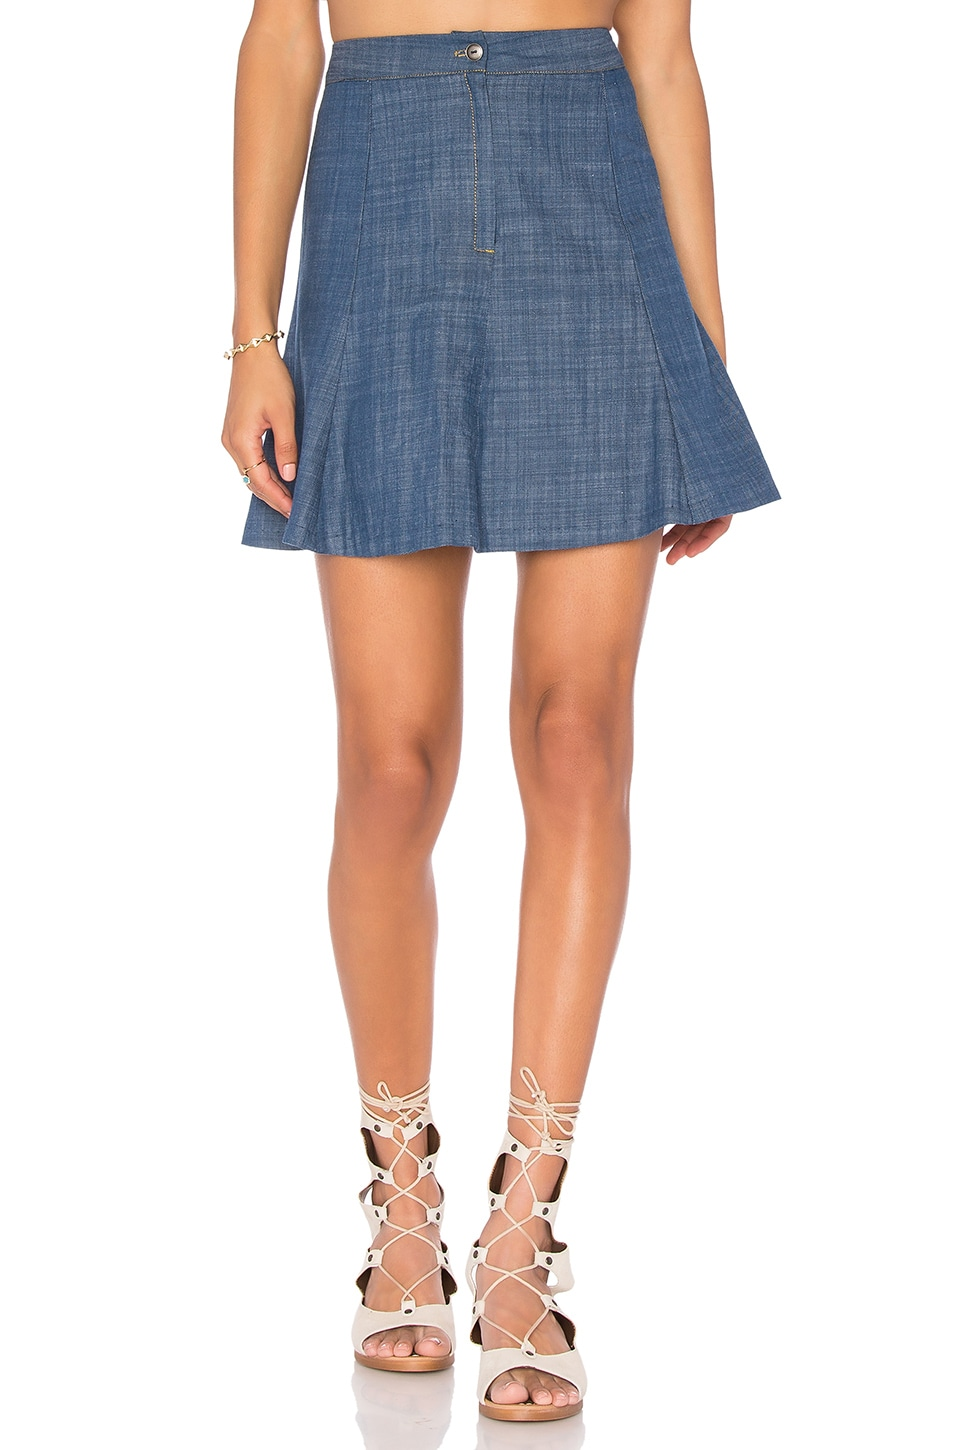 22 ways to wear a denim skirt page 3 blogs forums